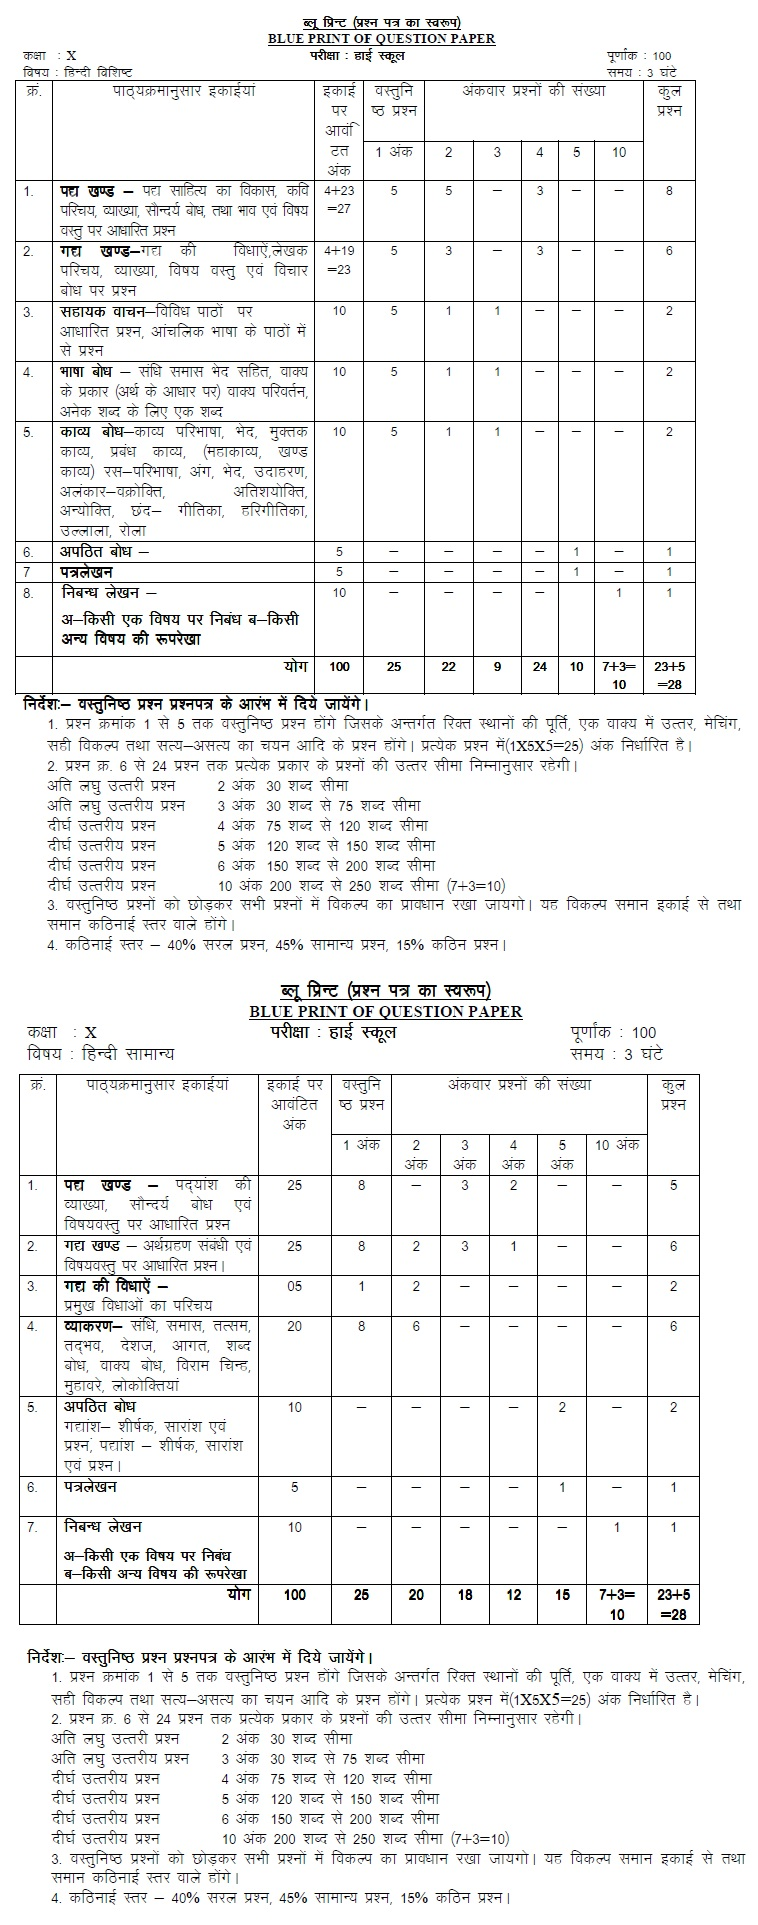 Mp board blue print of class x hindi question paper 2014 aglasem mp board blue print of class x hindi question paper 2014 malvernweather Images